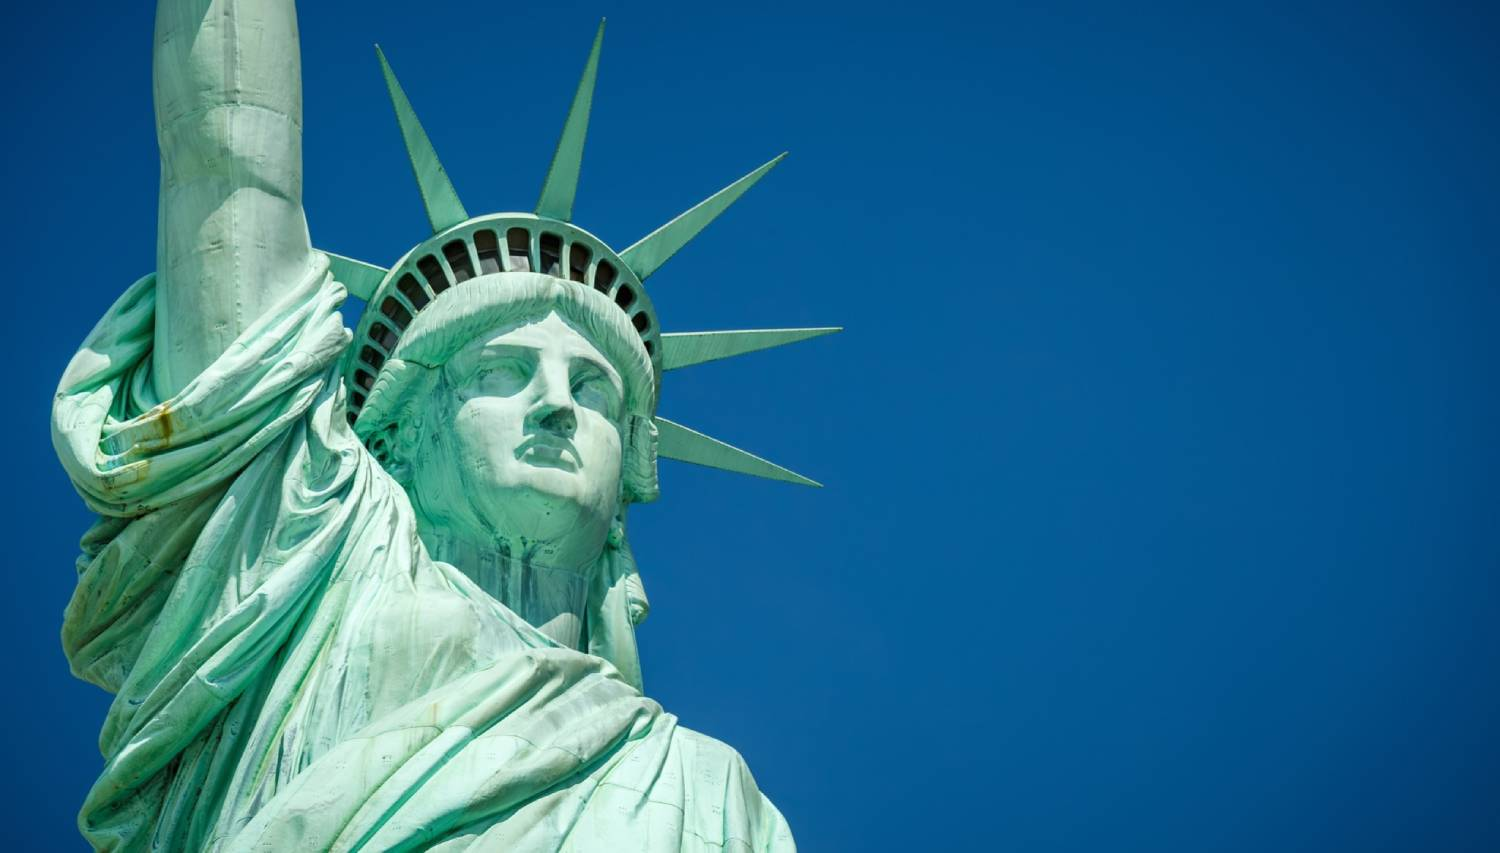 Statue of Liberty - Things To Do In New York City